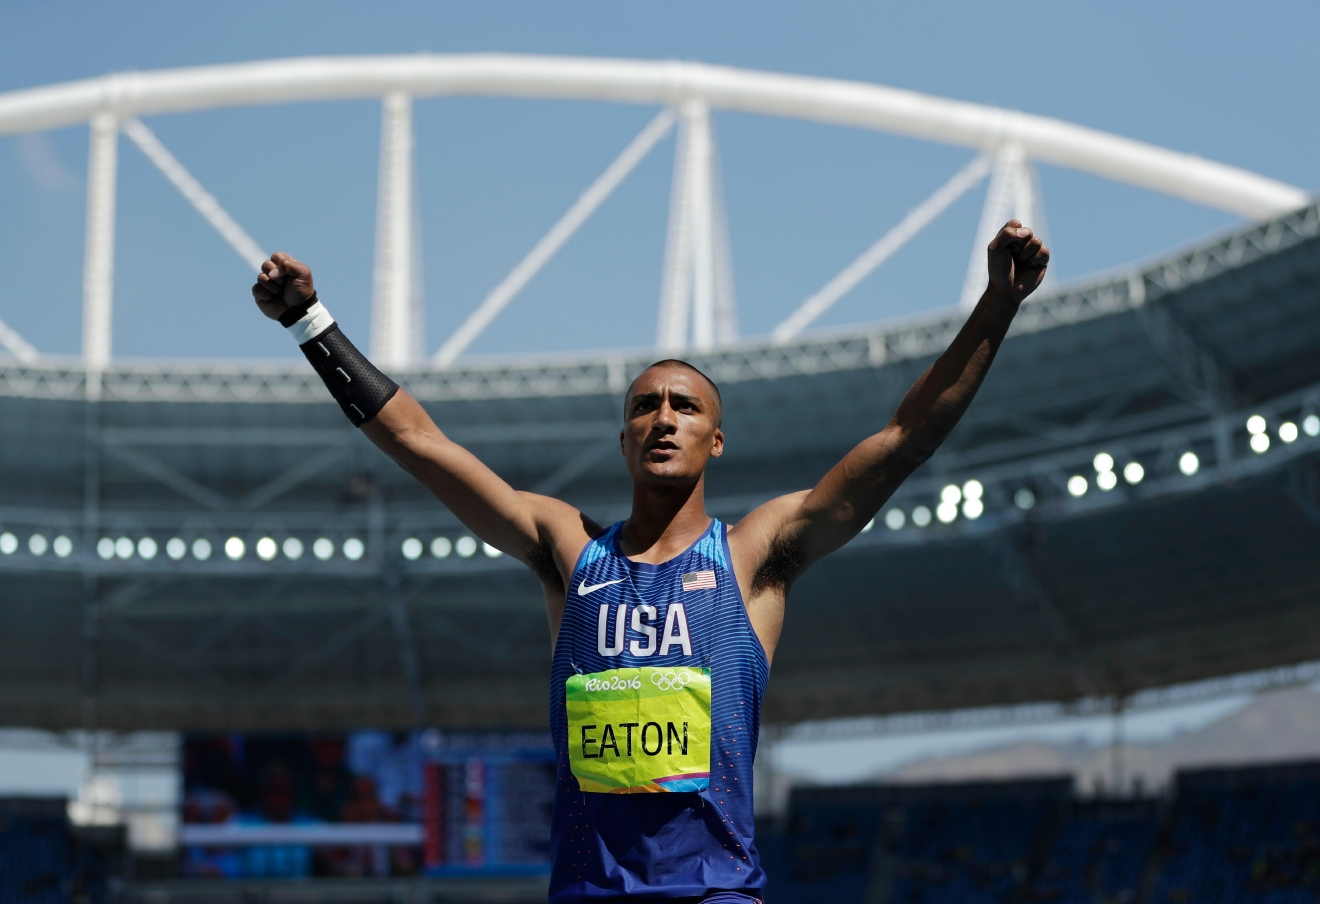 United States' Ashton Eaton celebrates after an attempt in the shot put of the decathlon during the athletics competitions of the 2016 Summer Olympics at the Olympic stadium in Rio de Janeiro, Brazil, Wednesday, Aug. 17, 2016. (AP Photo/Matt Slocum)